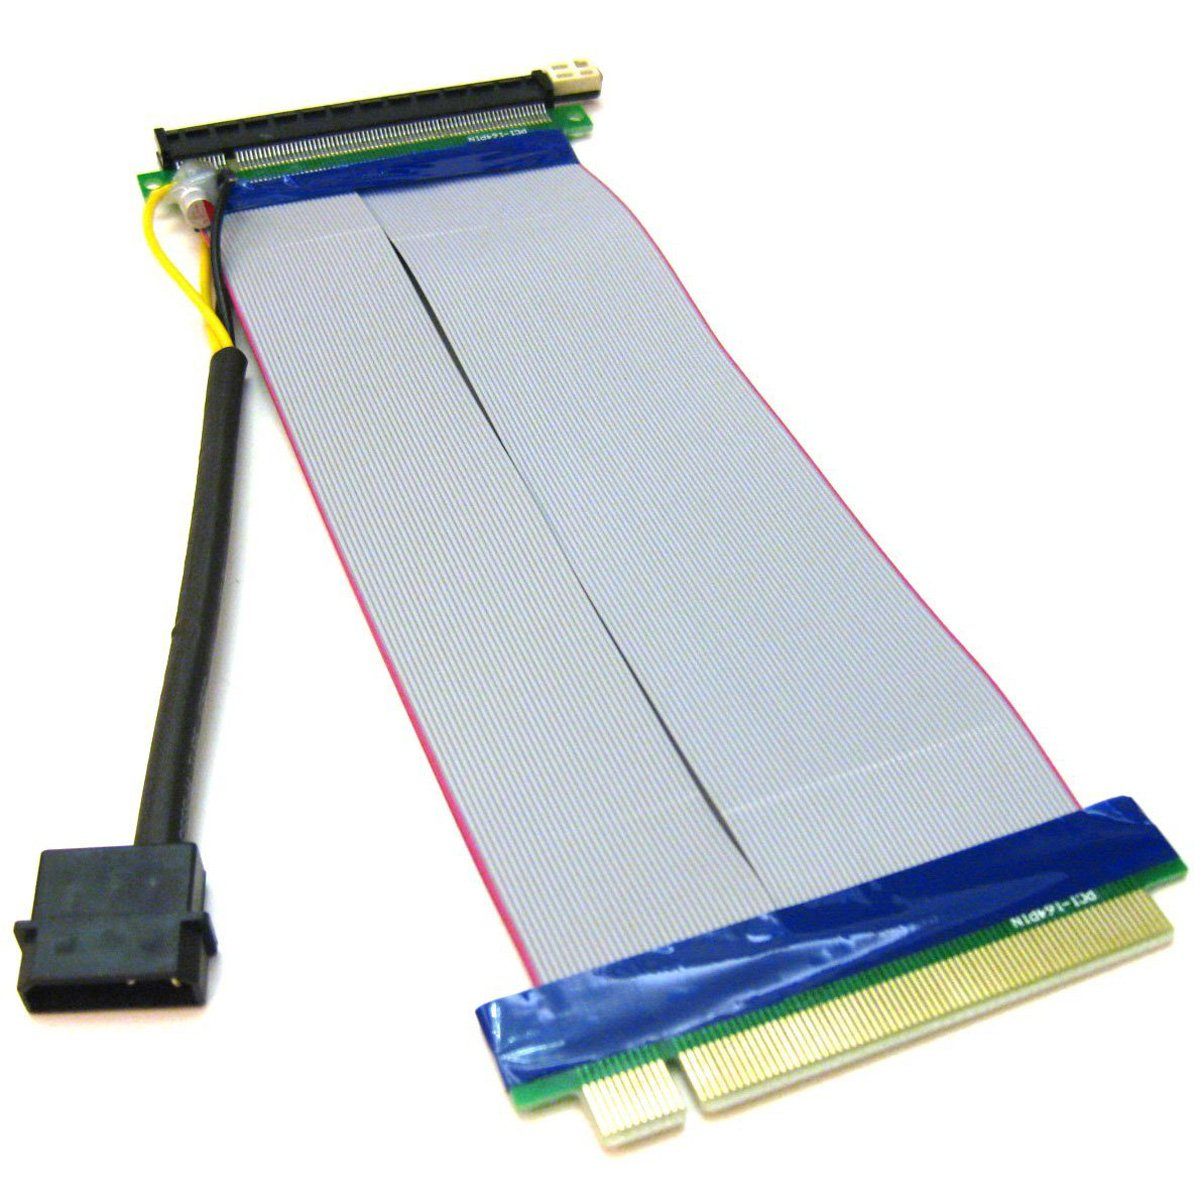 PCI-E 16X to 16X Adapter Riser Card Extension Cable Molex Power